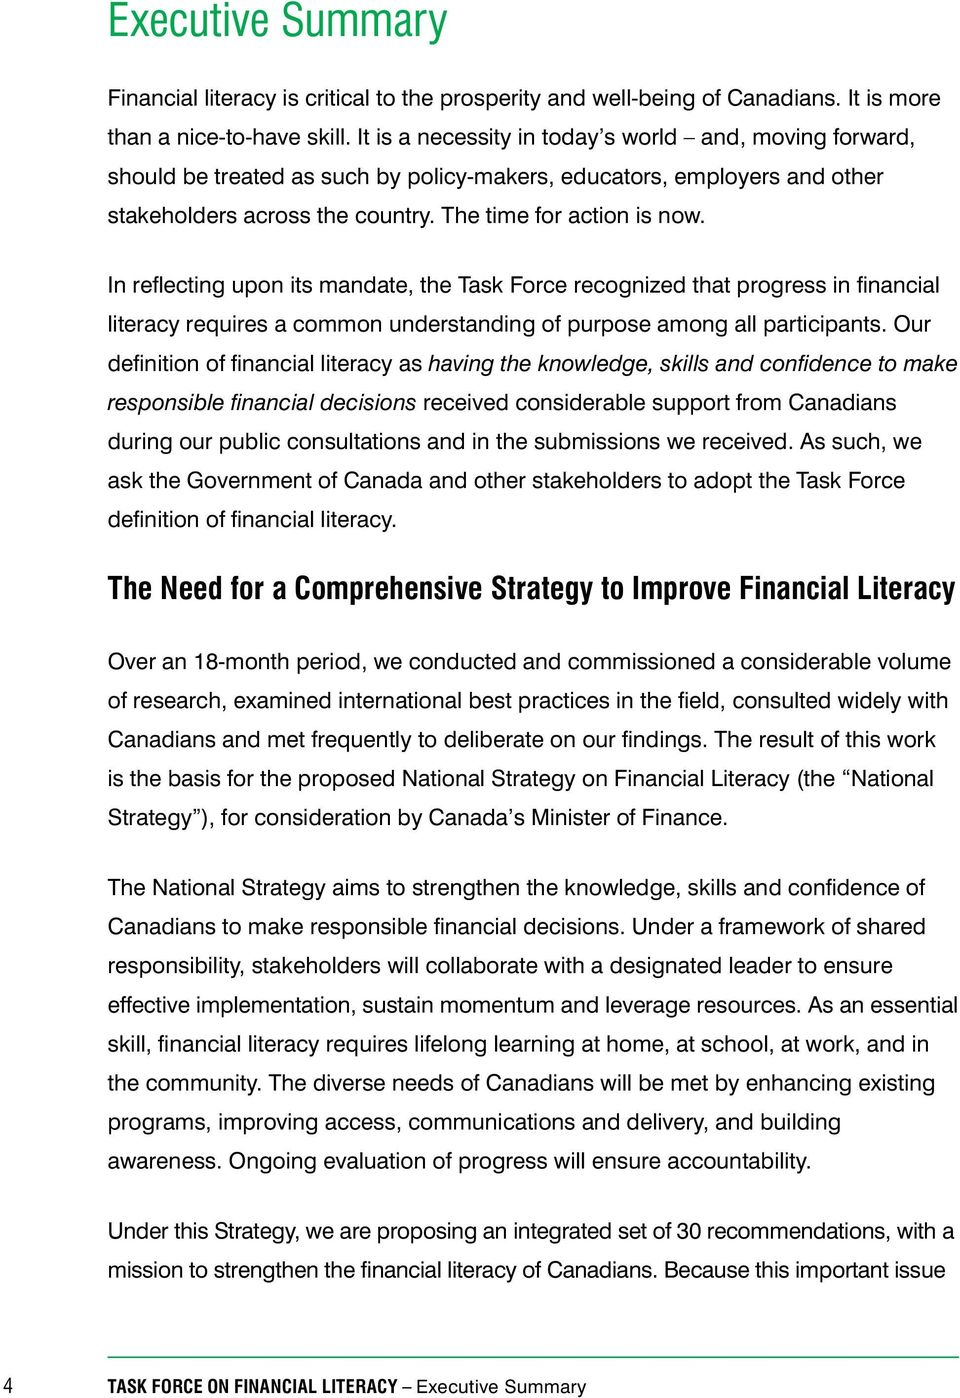 In reflecting upon its mandate, the Task Force recognized that progress in financial literacy requires a common understanding of purpose among all participants.